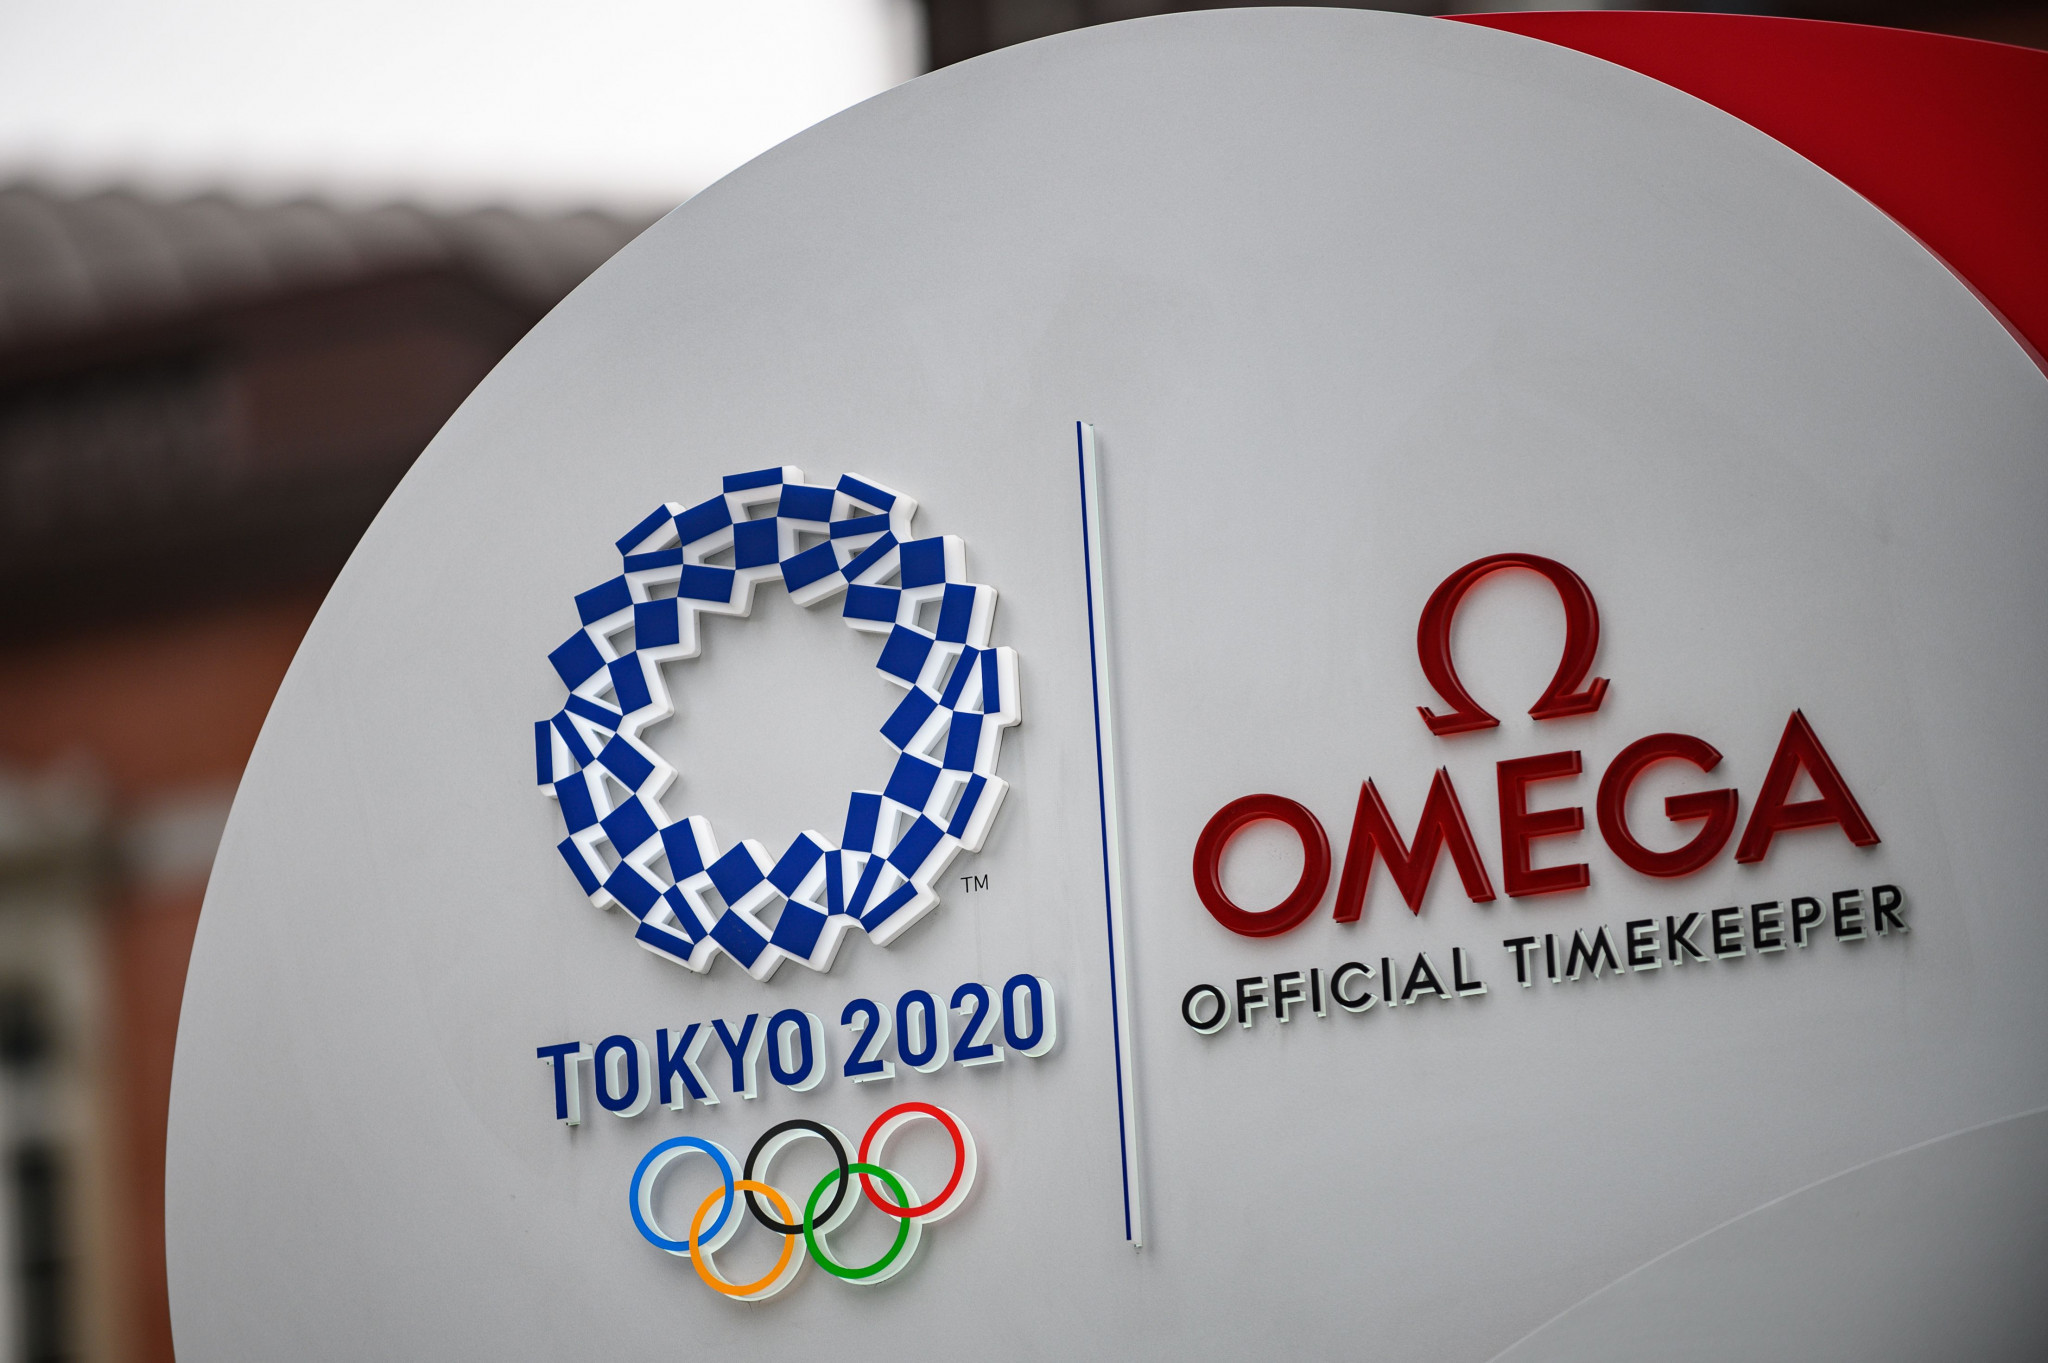 Olympic sponsors could ask for compensation if Tokyo 2020 do not go ahead in a normal fashion ©Getty Images